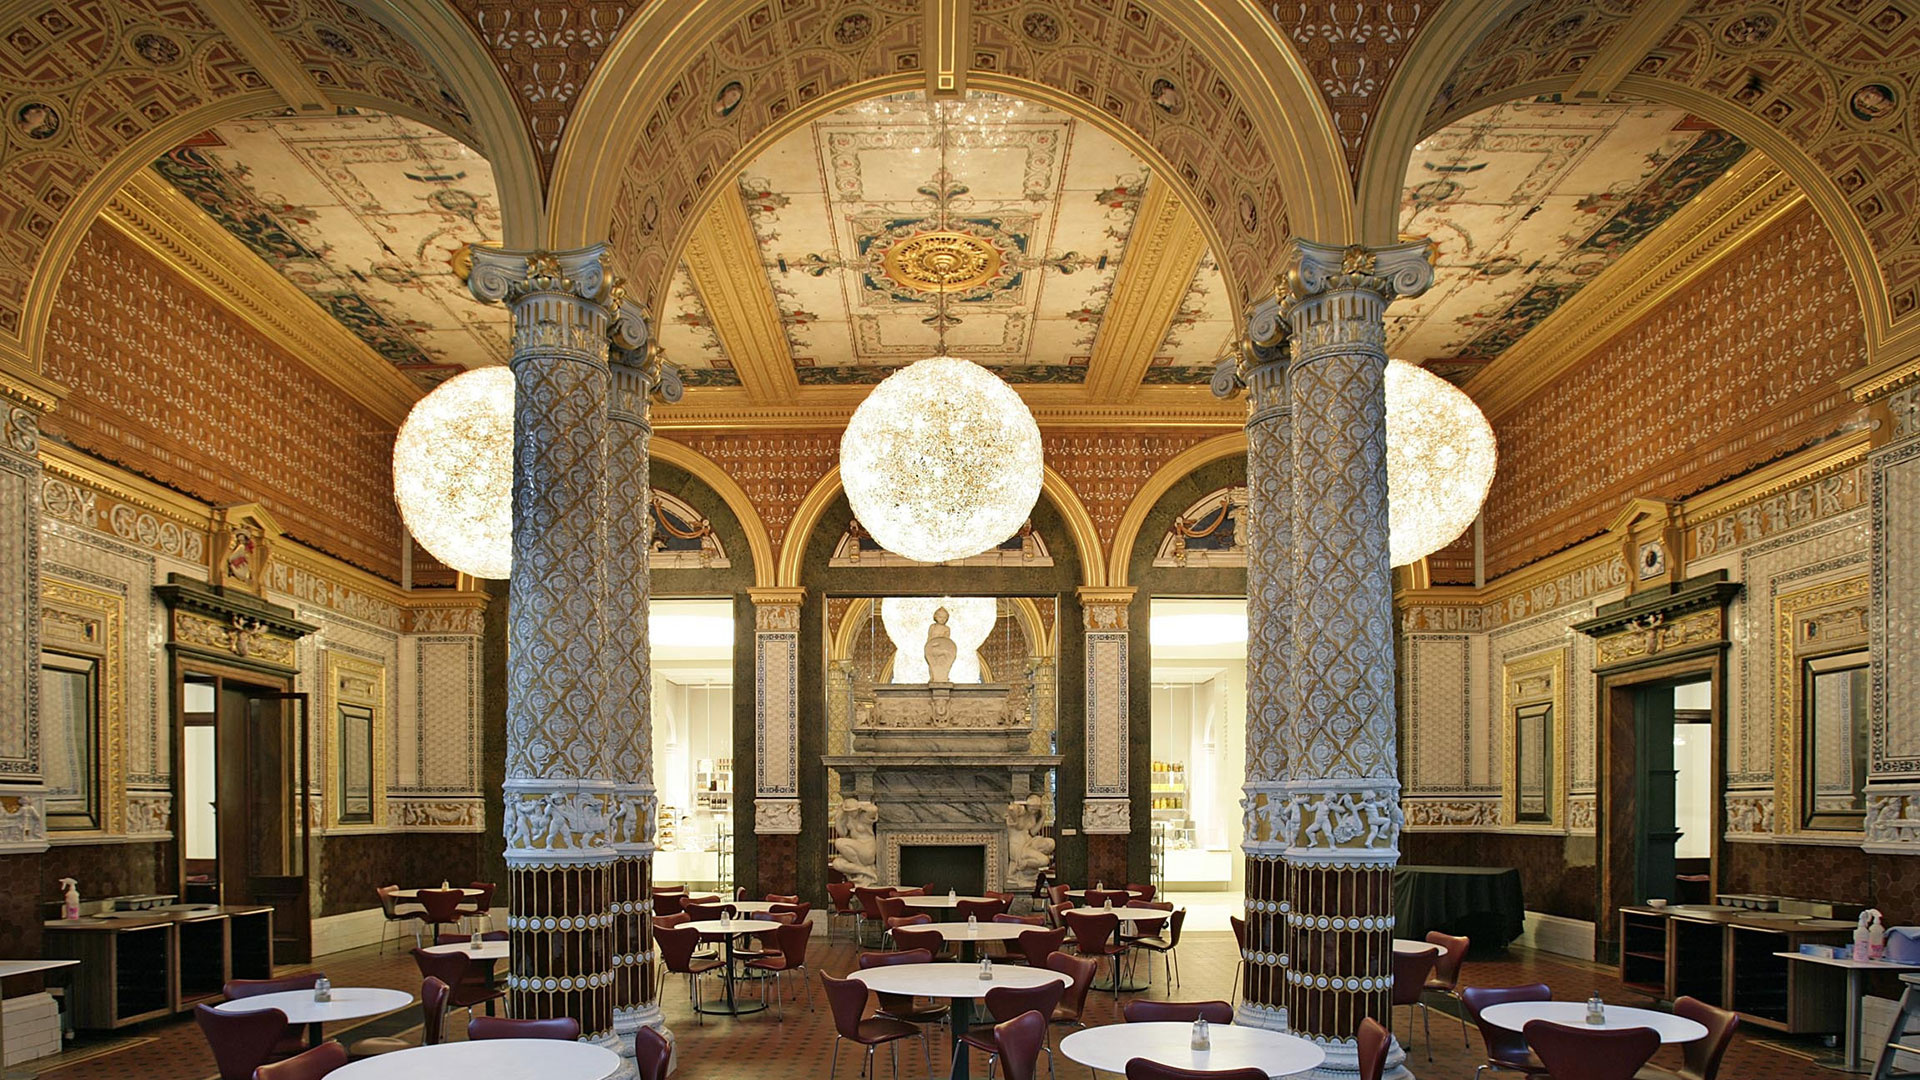 V&A Café; Photograph © Victoria and Albert Museum London